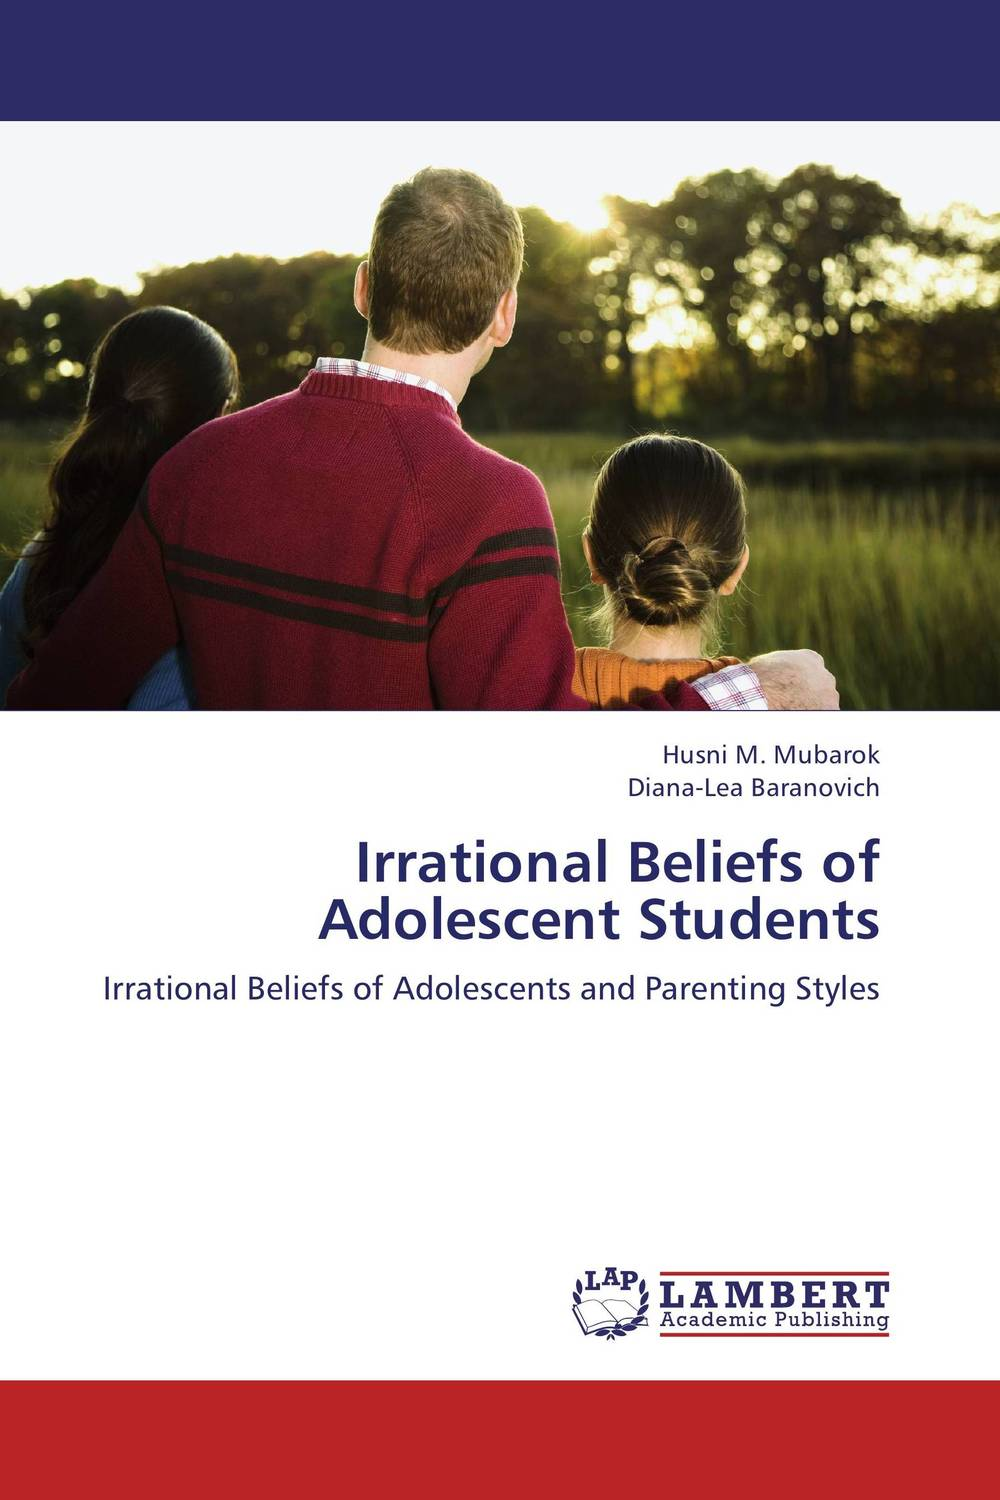 Irrational Beliefs of Adolescent Students filipino alcoholic fathers and their adolescent children